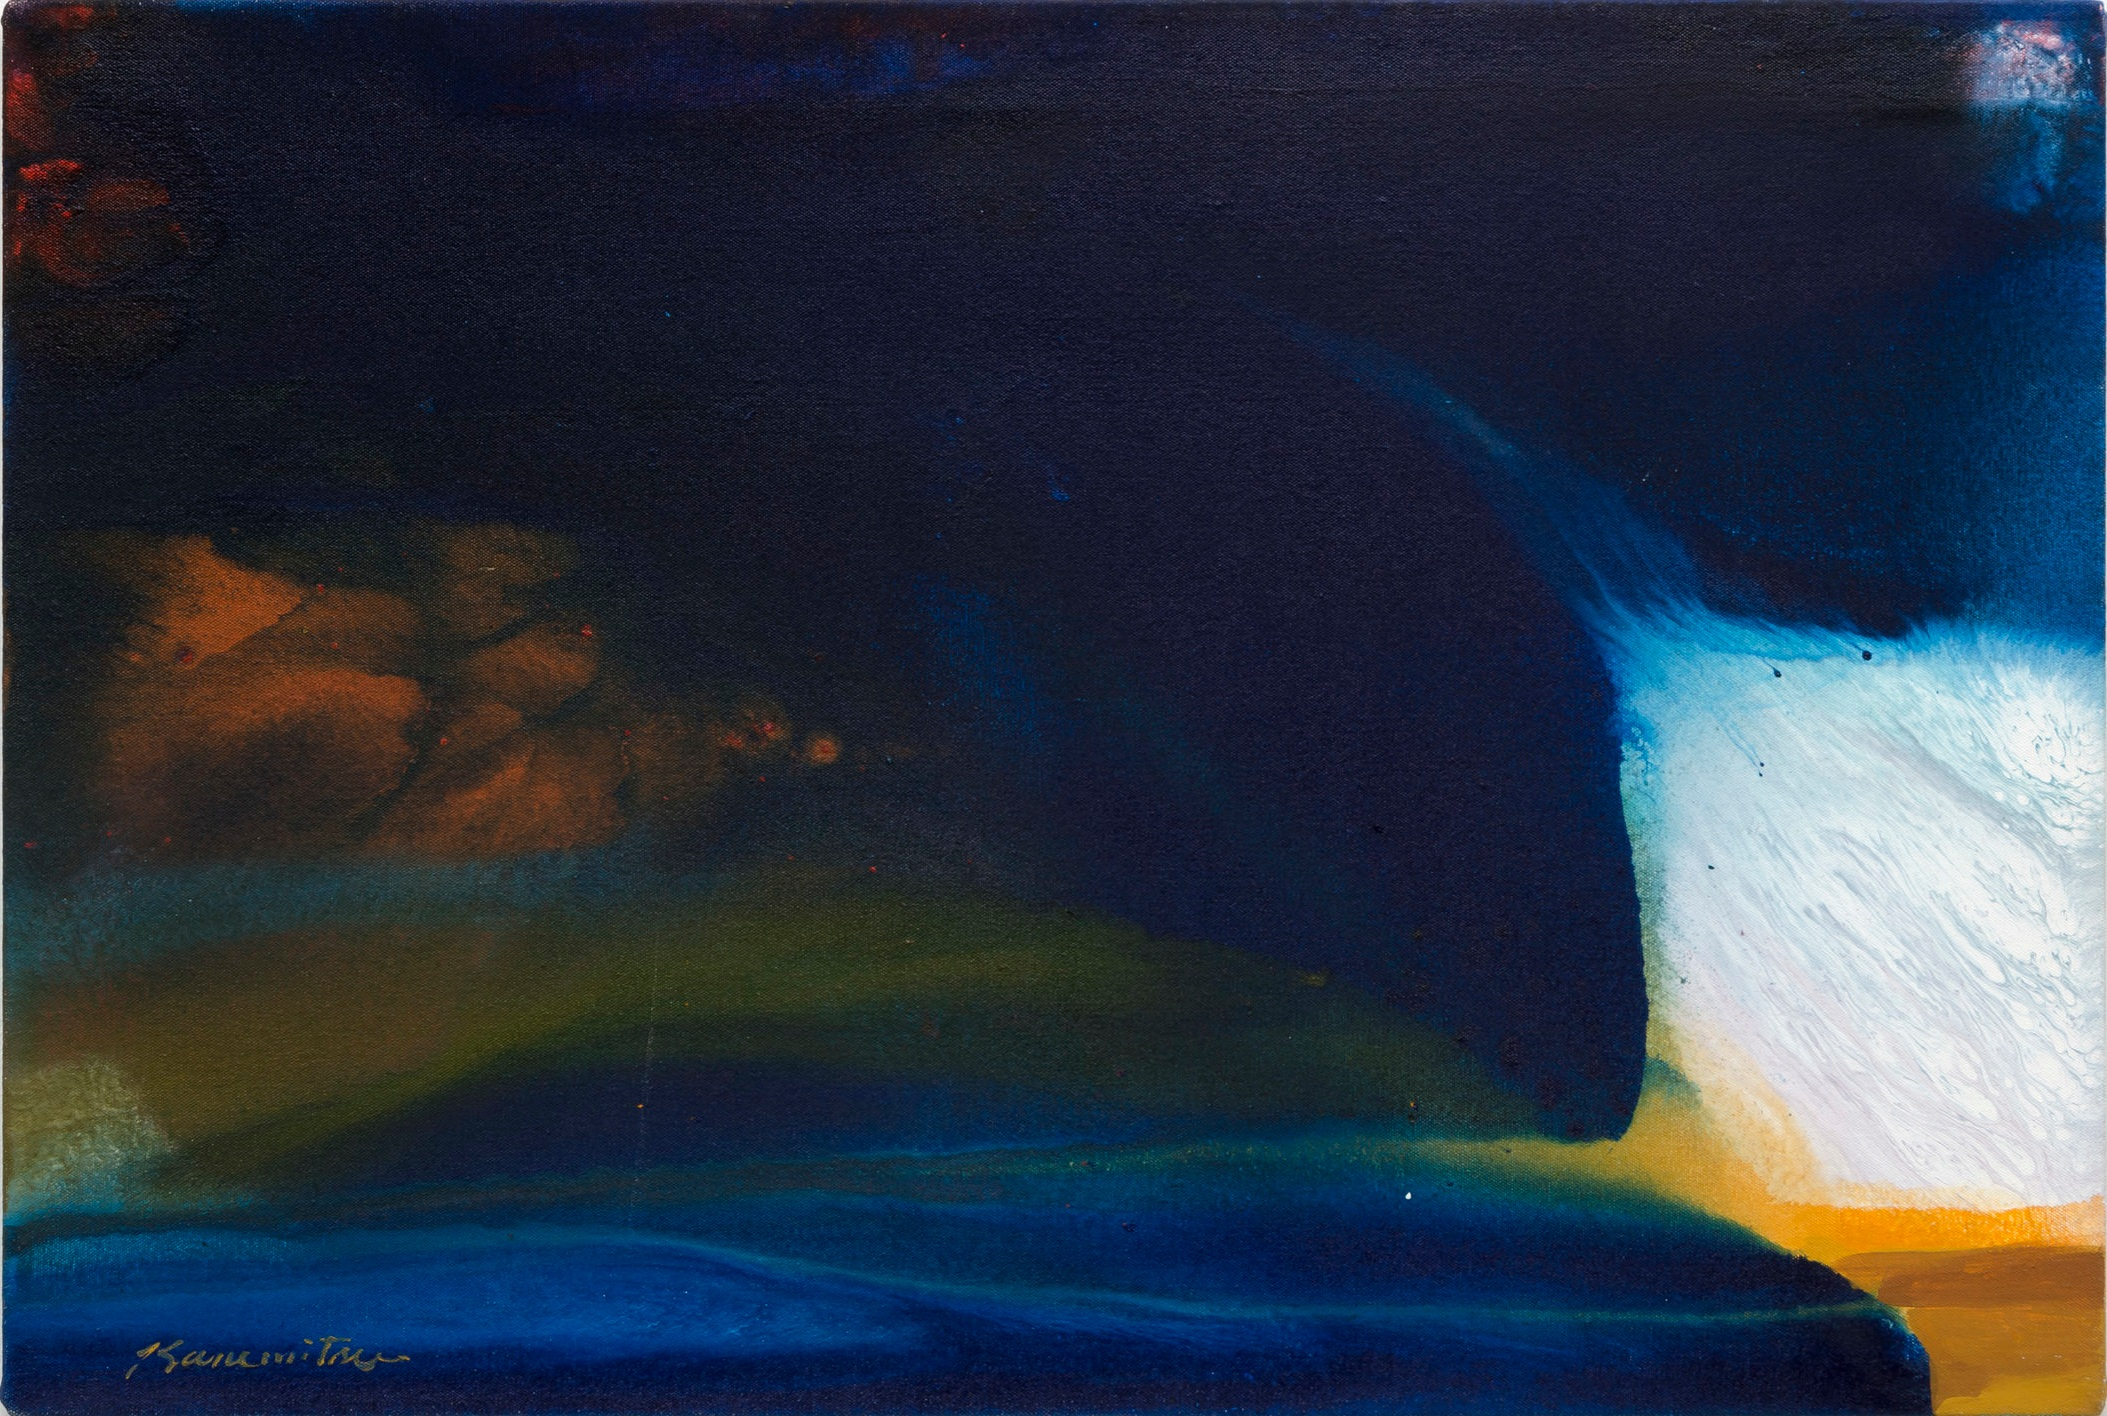 Winter Night , 1983 acrylic on canvas 20 x 30 inches; 50.8 x 76.2 centimeters